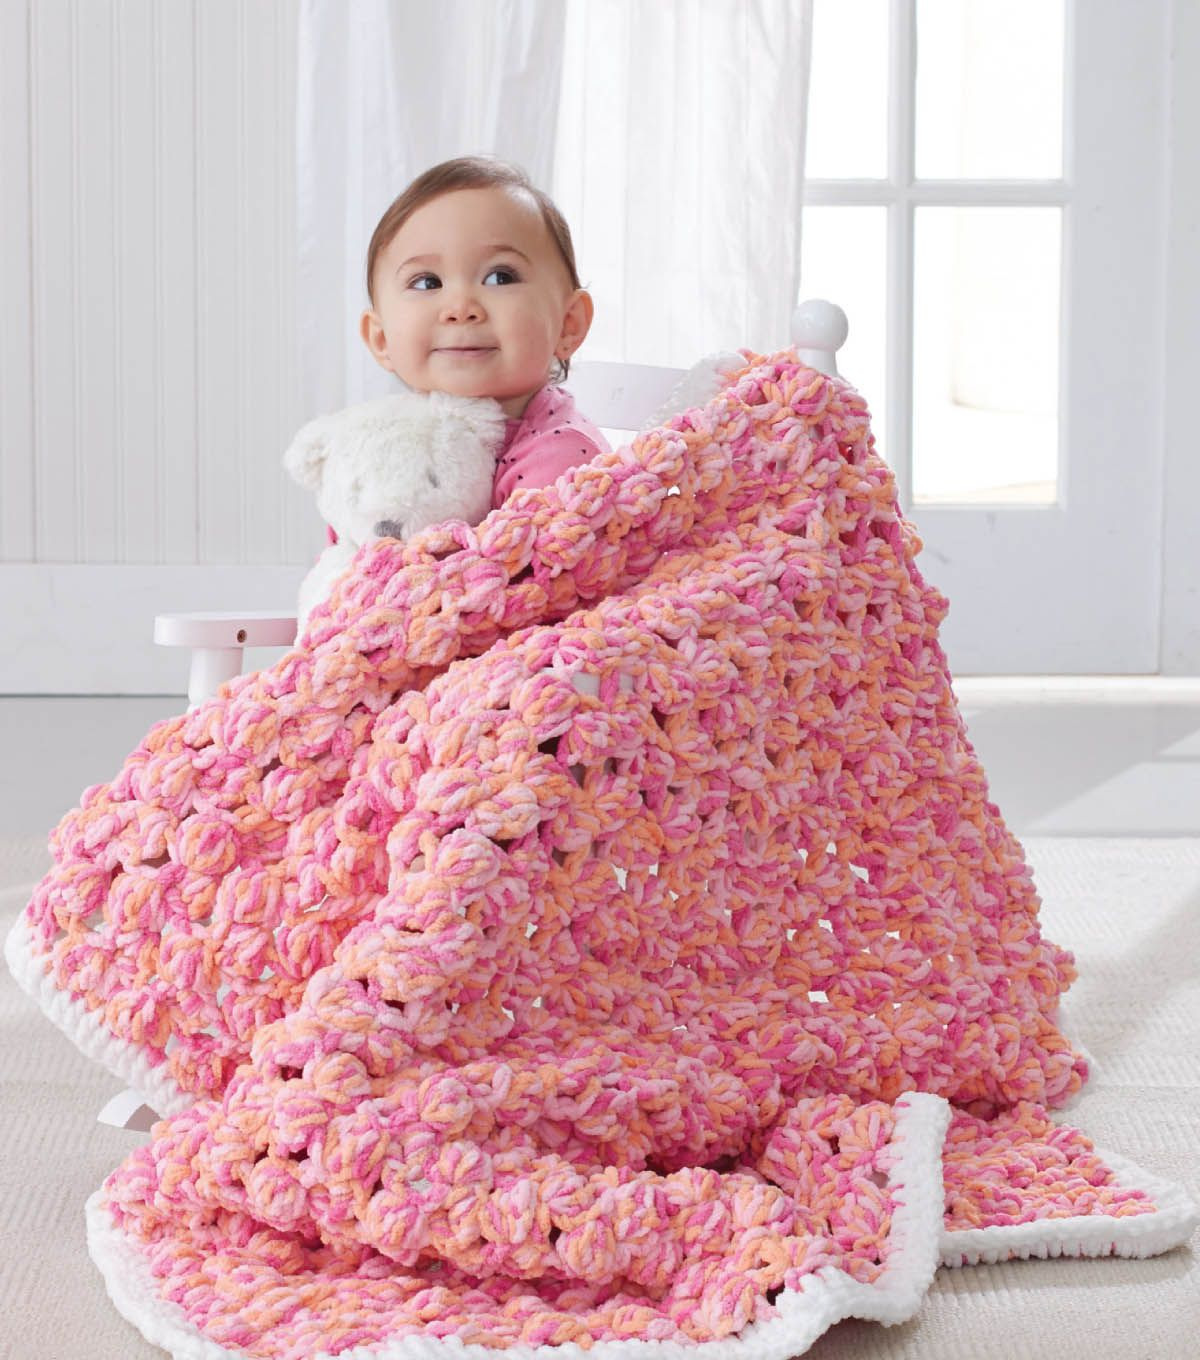 Baby Bobble Blanket Bernat® Baby Blanket™ Yarn: 4 skeins (MC) Peachy ...